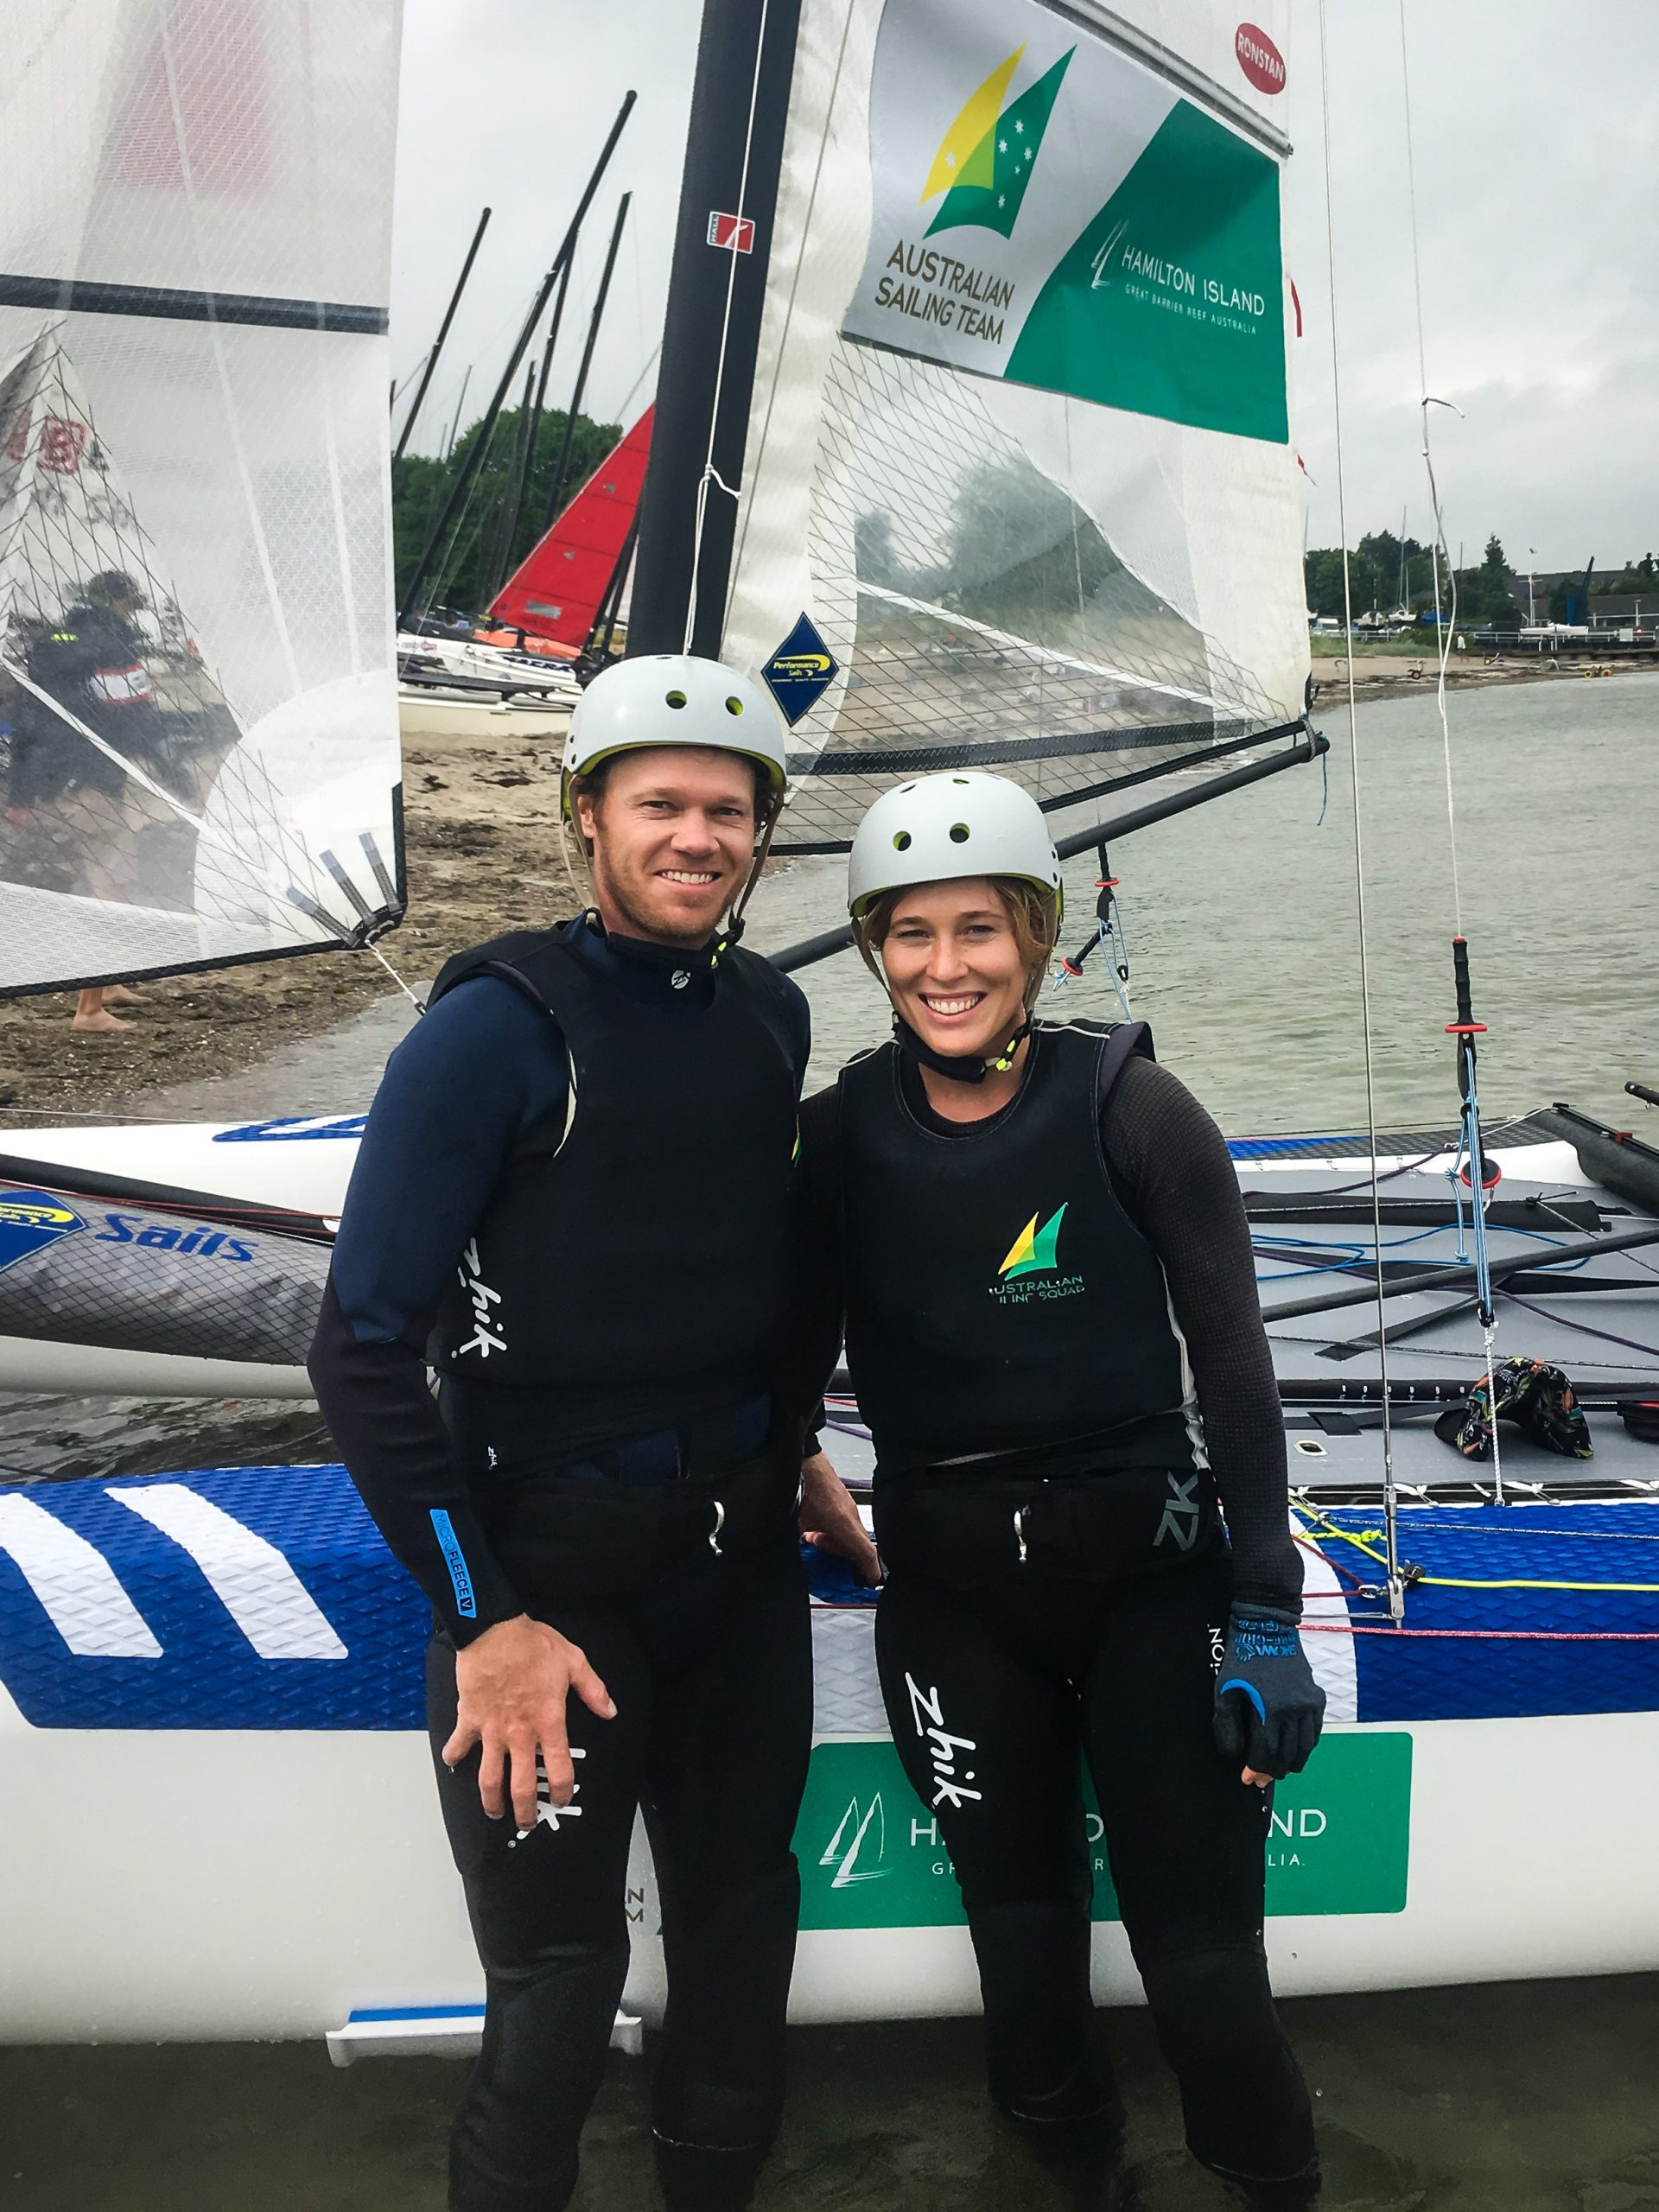 Nathan and Haylee Outteridge. Photo Australian Sailing Team.